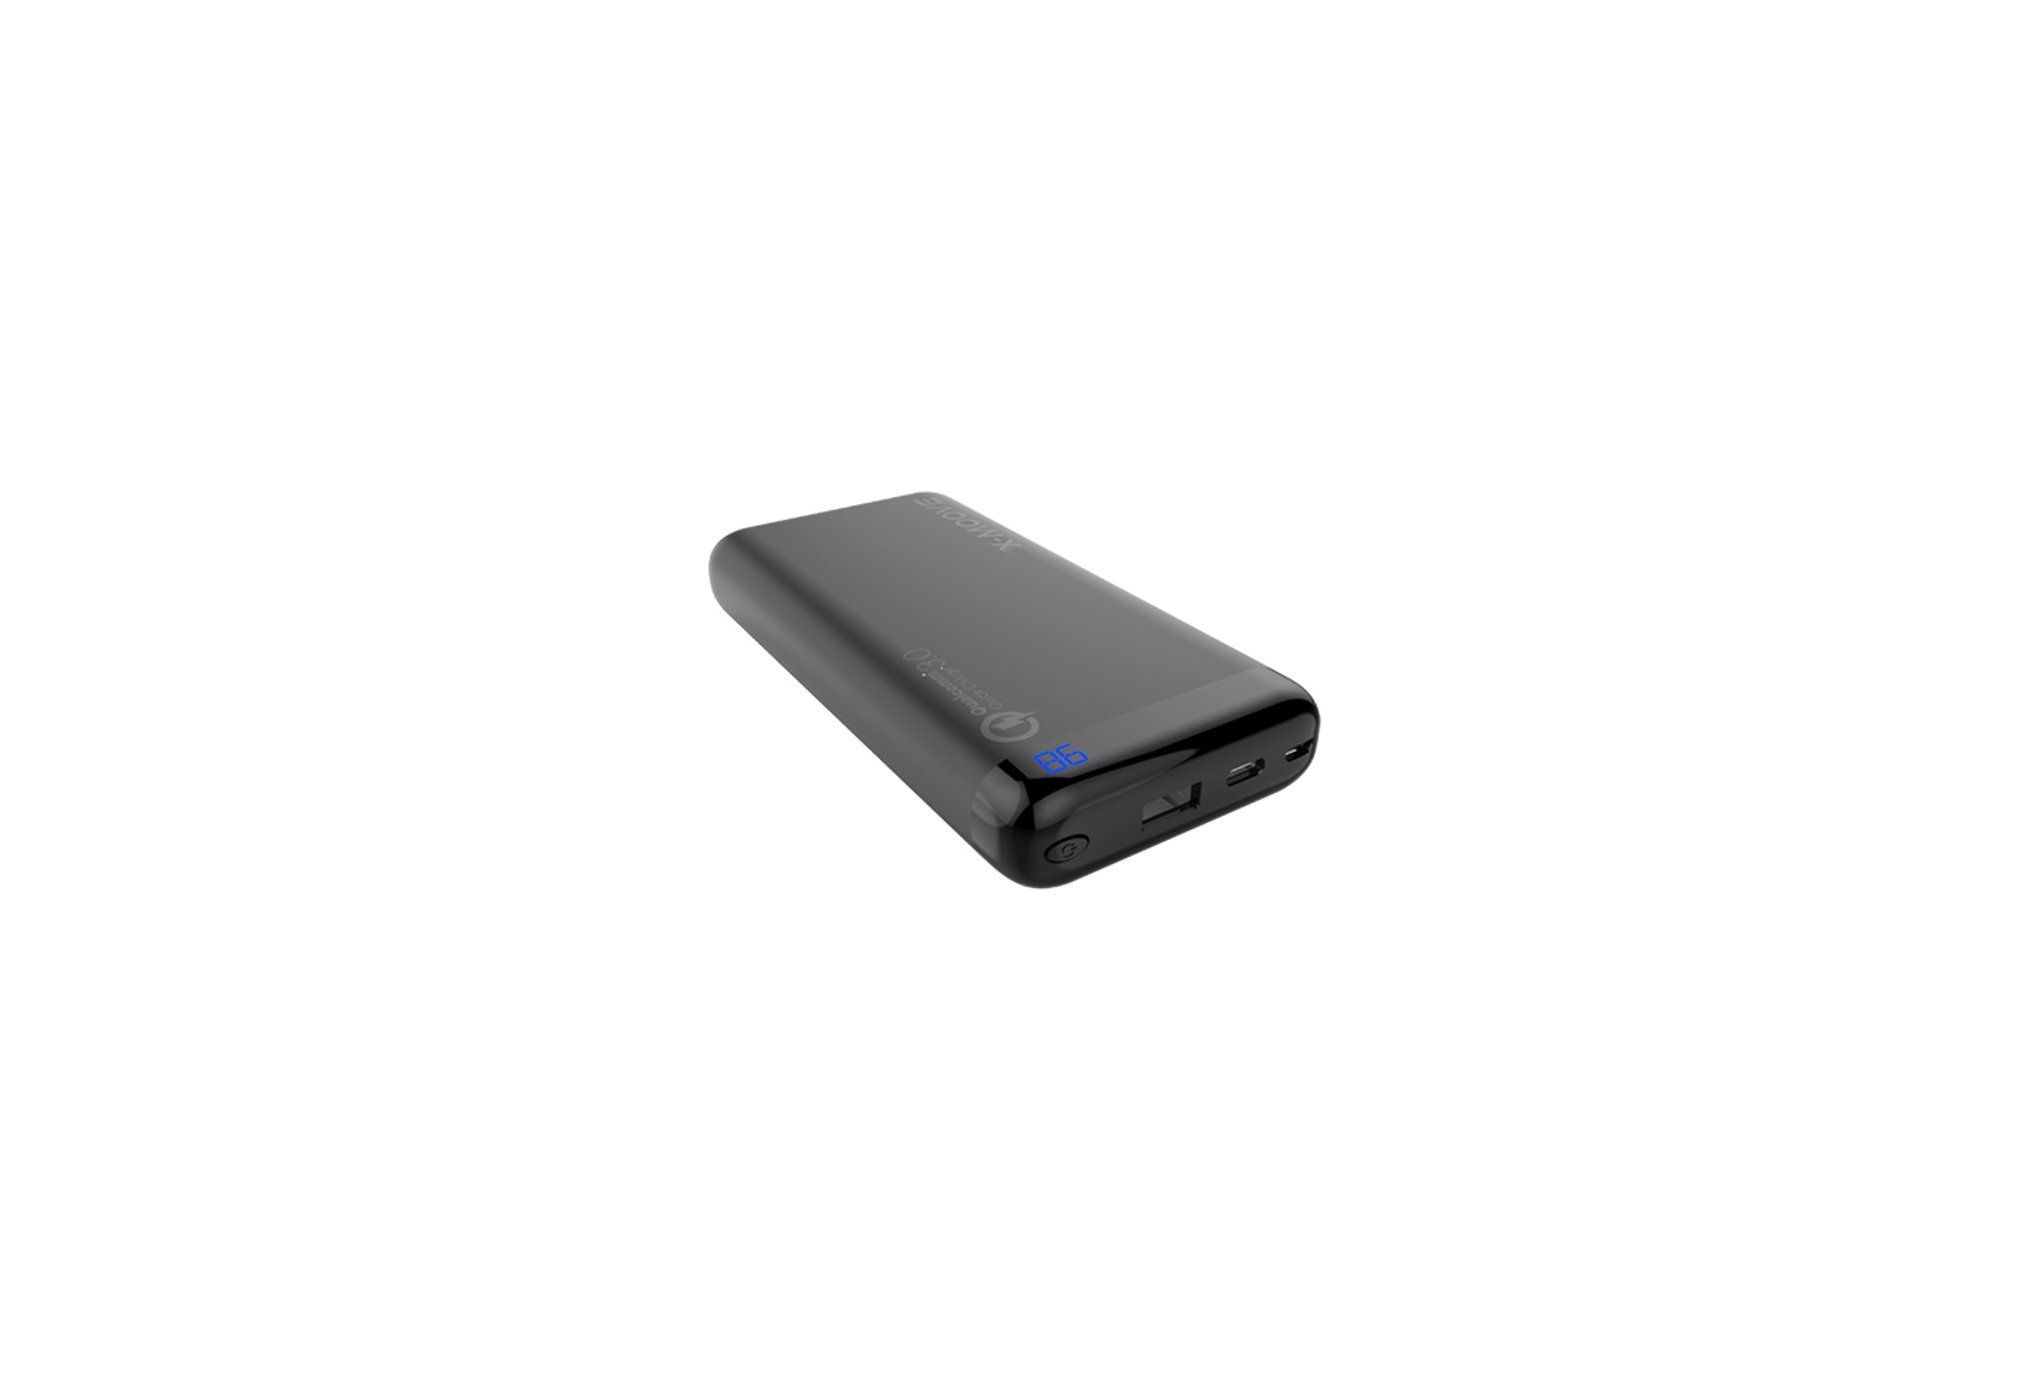 X-Moove Powergo Flash 15000 Batterie externe